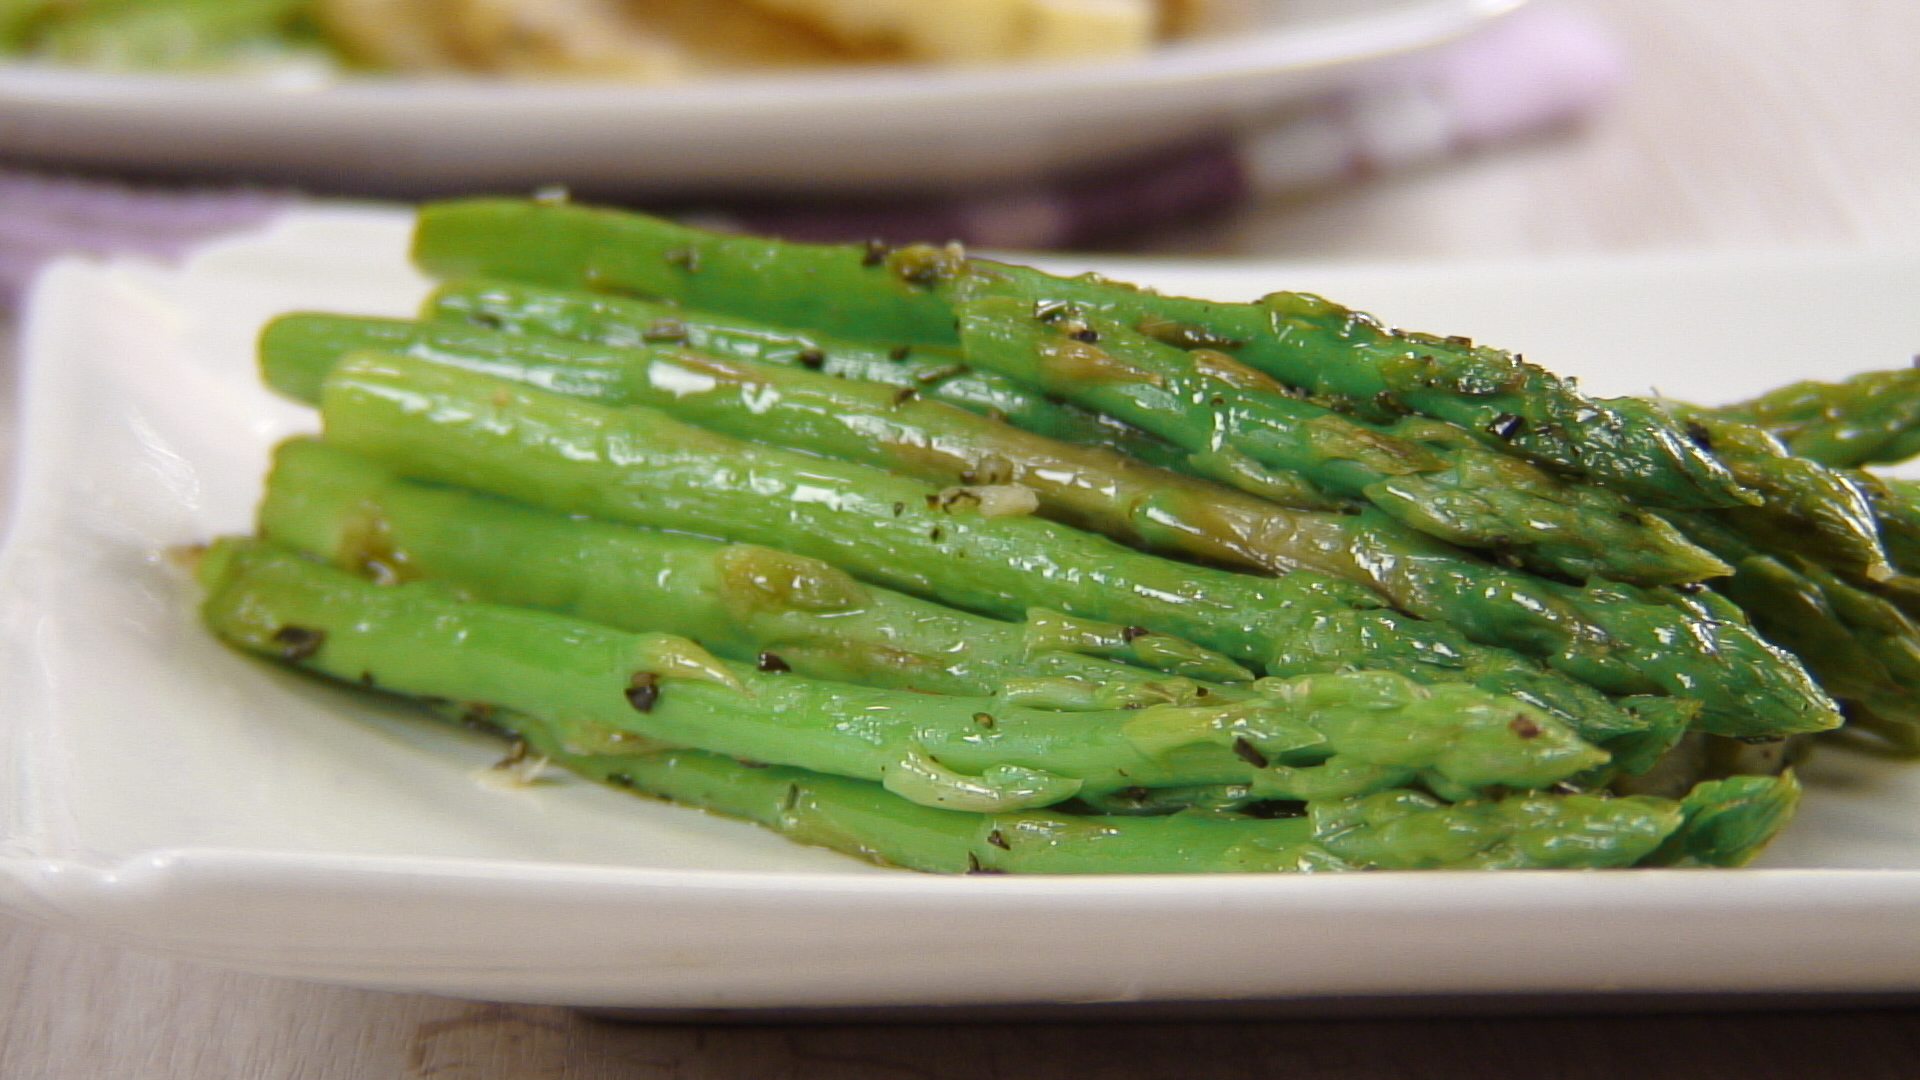 Sauteed Asparagus with Rosemary and Garlic